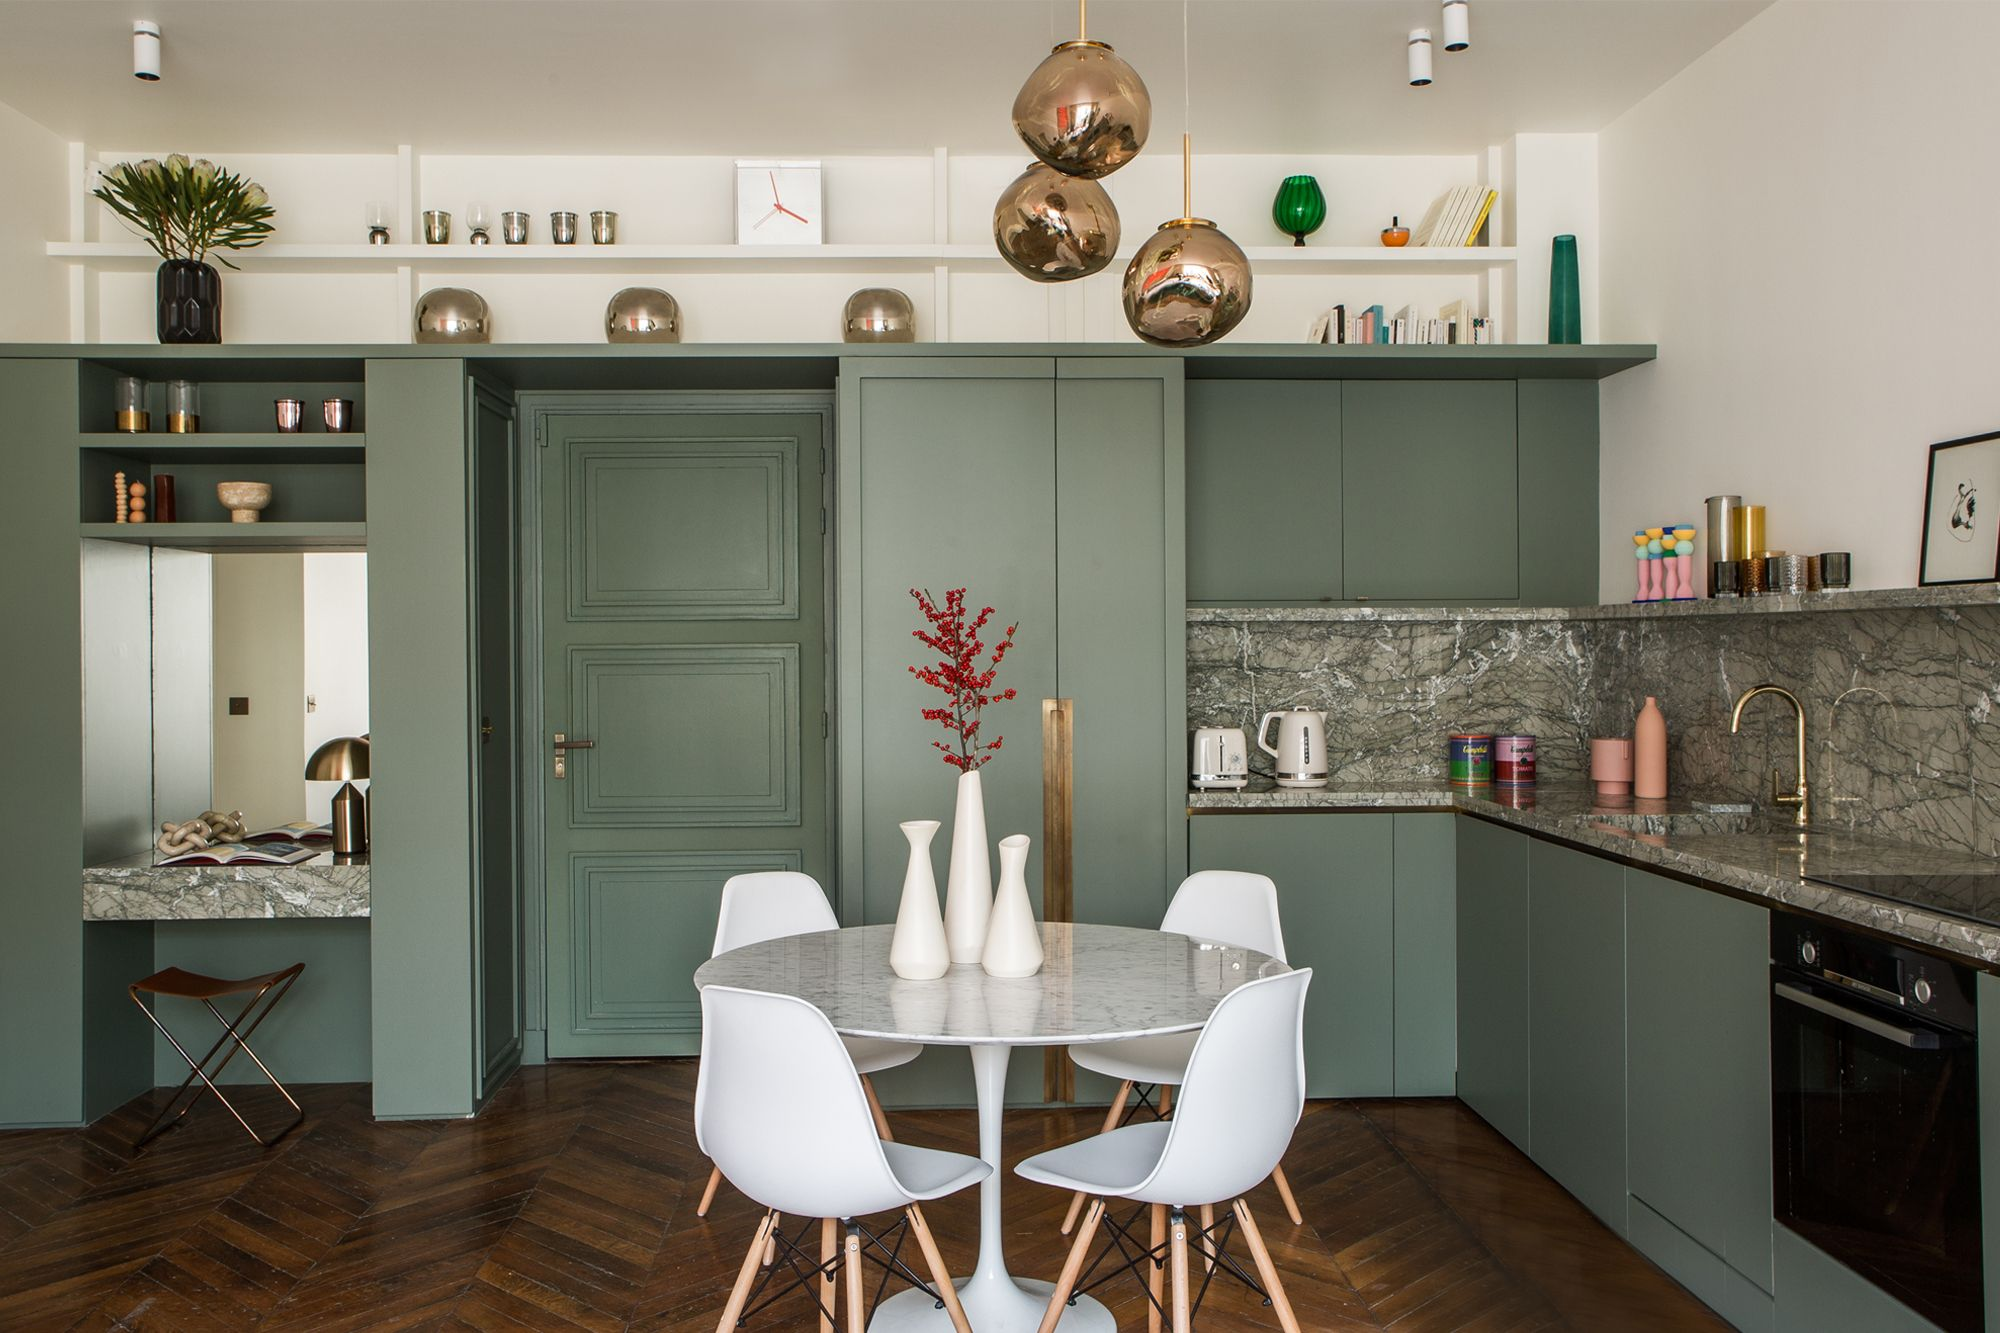 The kitchen is painted in a single green hue to create a contemporary space that pops